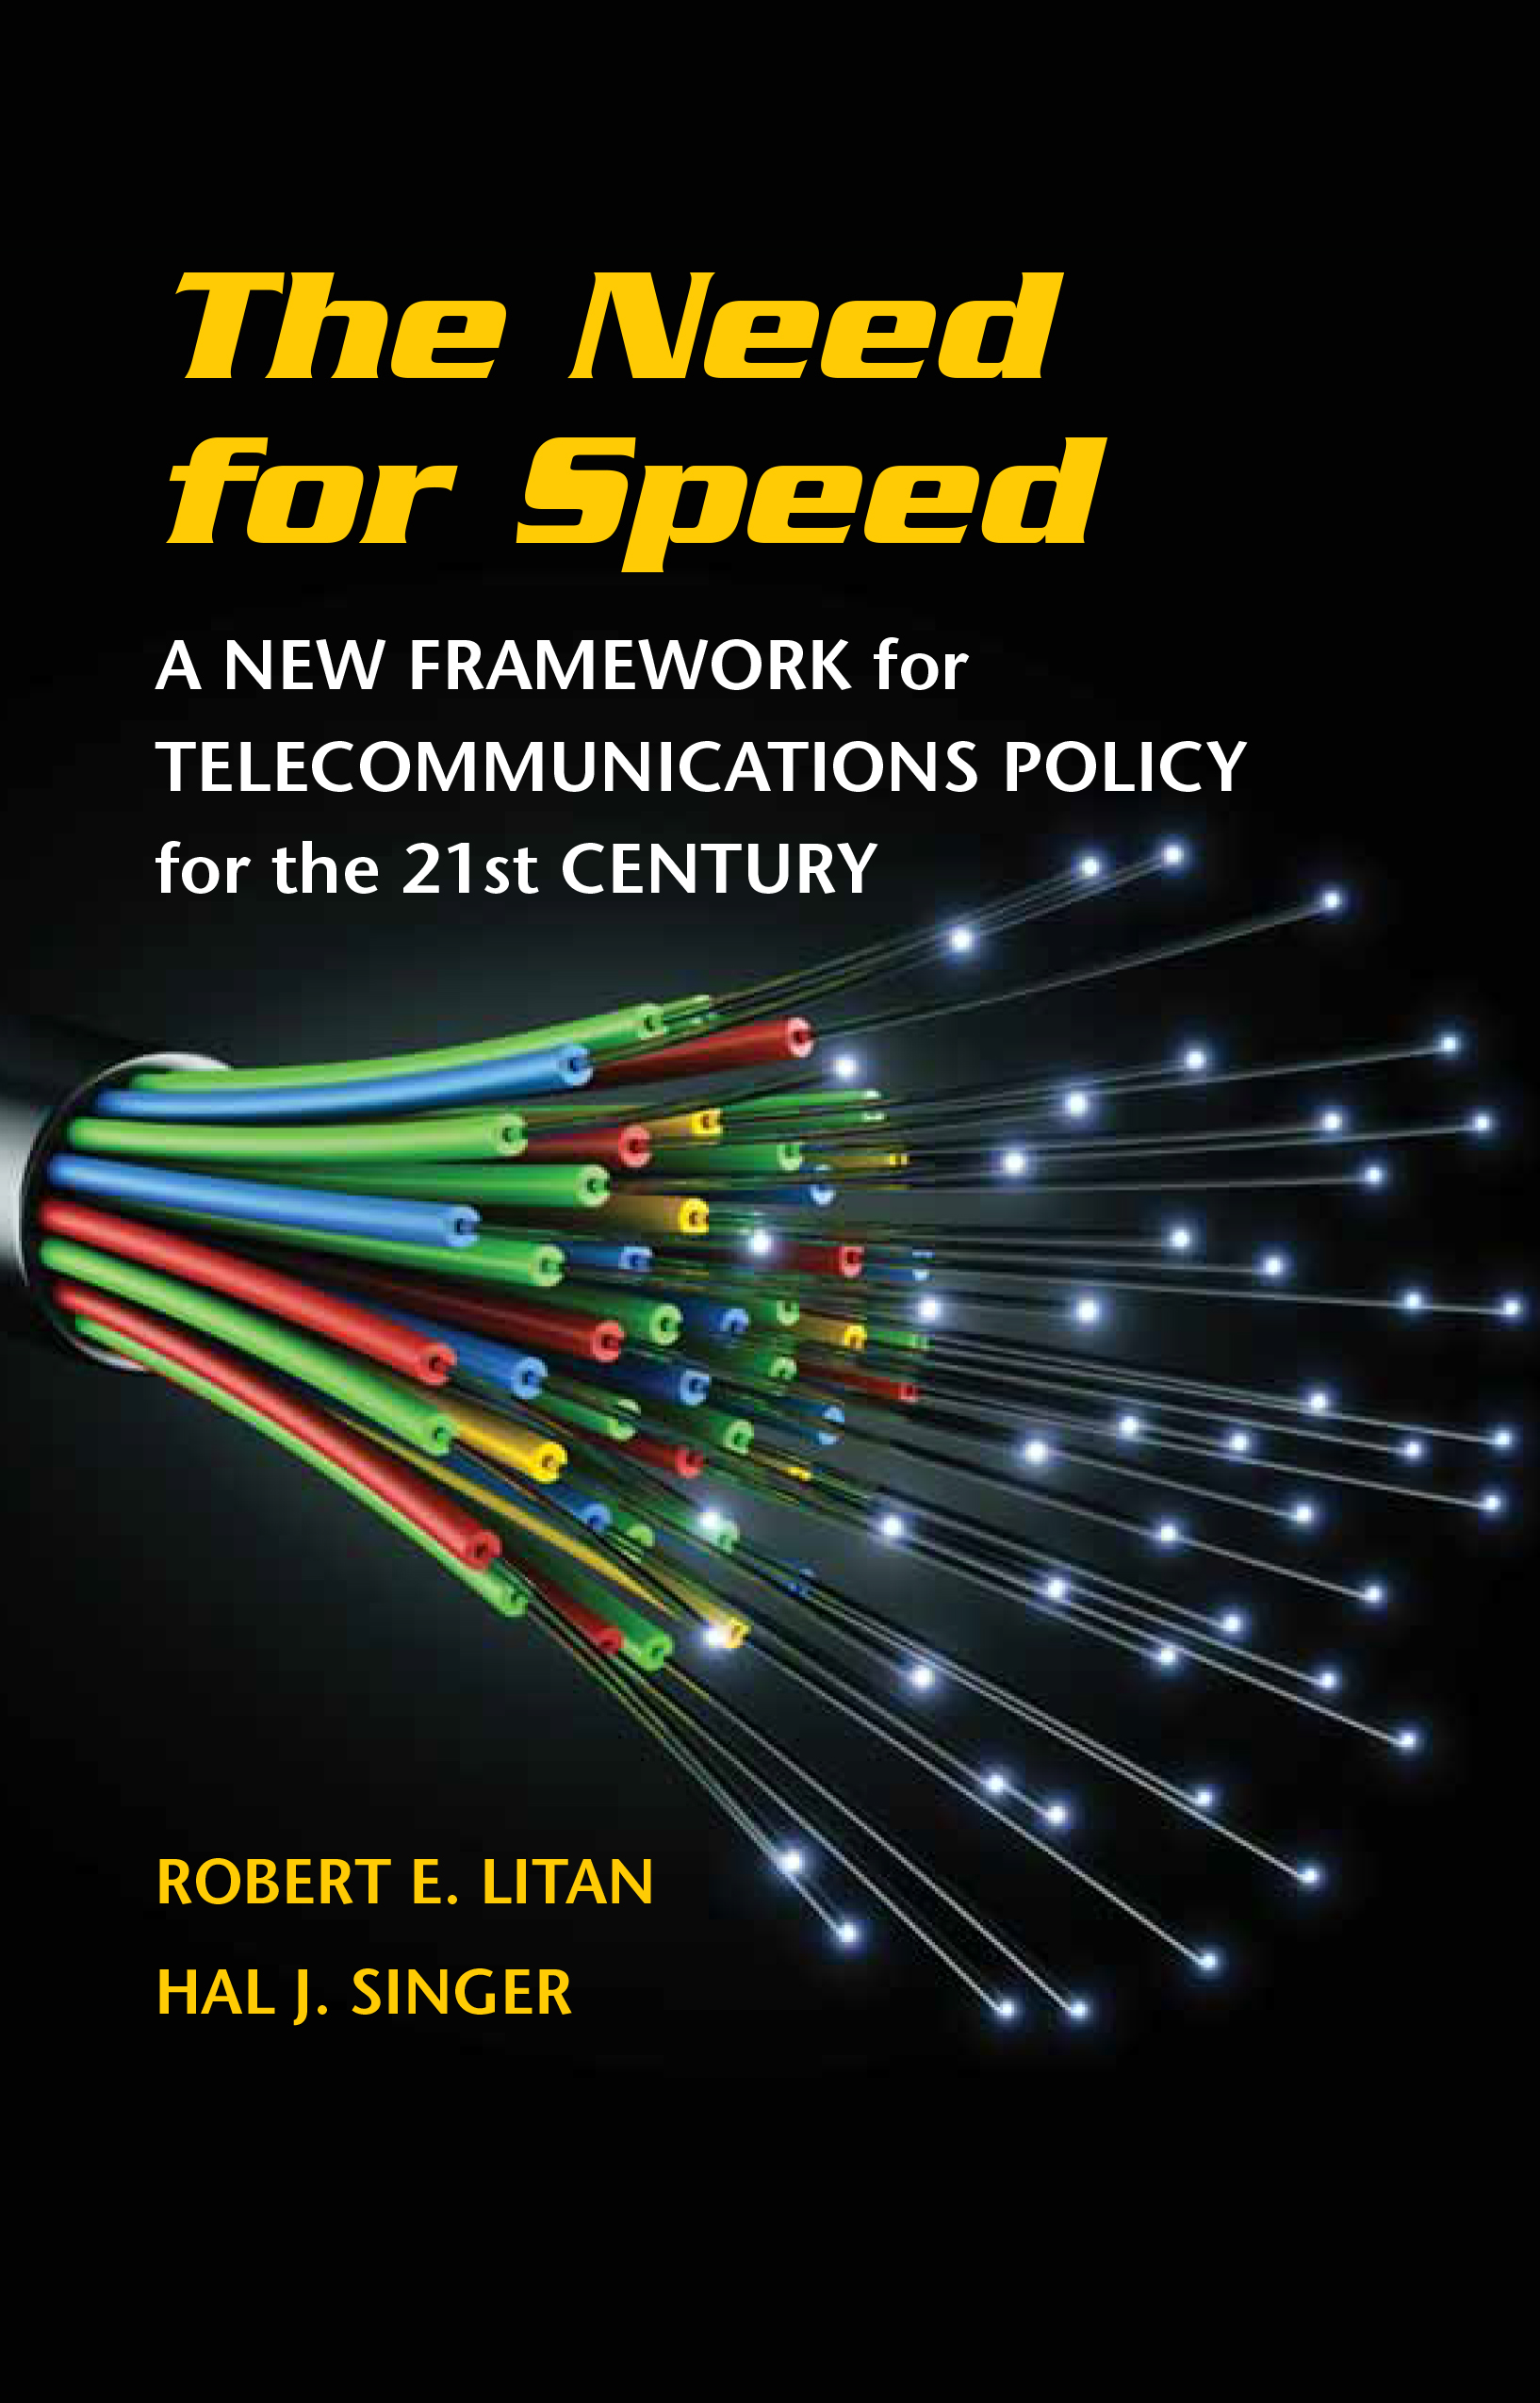 The Economy And Internet What Lies Ahead Their Fibre Optic Cables To Smaller Rival Players Make Some Profit Related Books